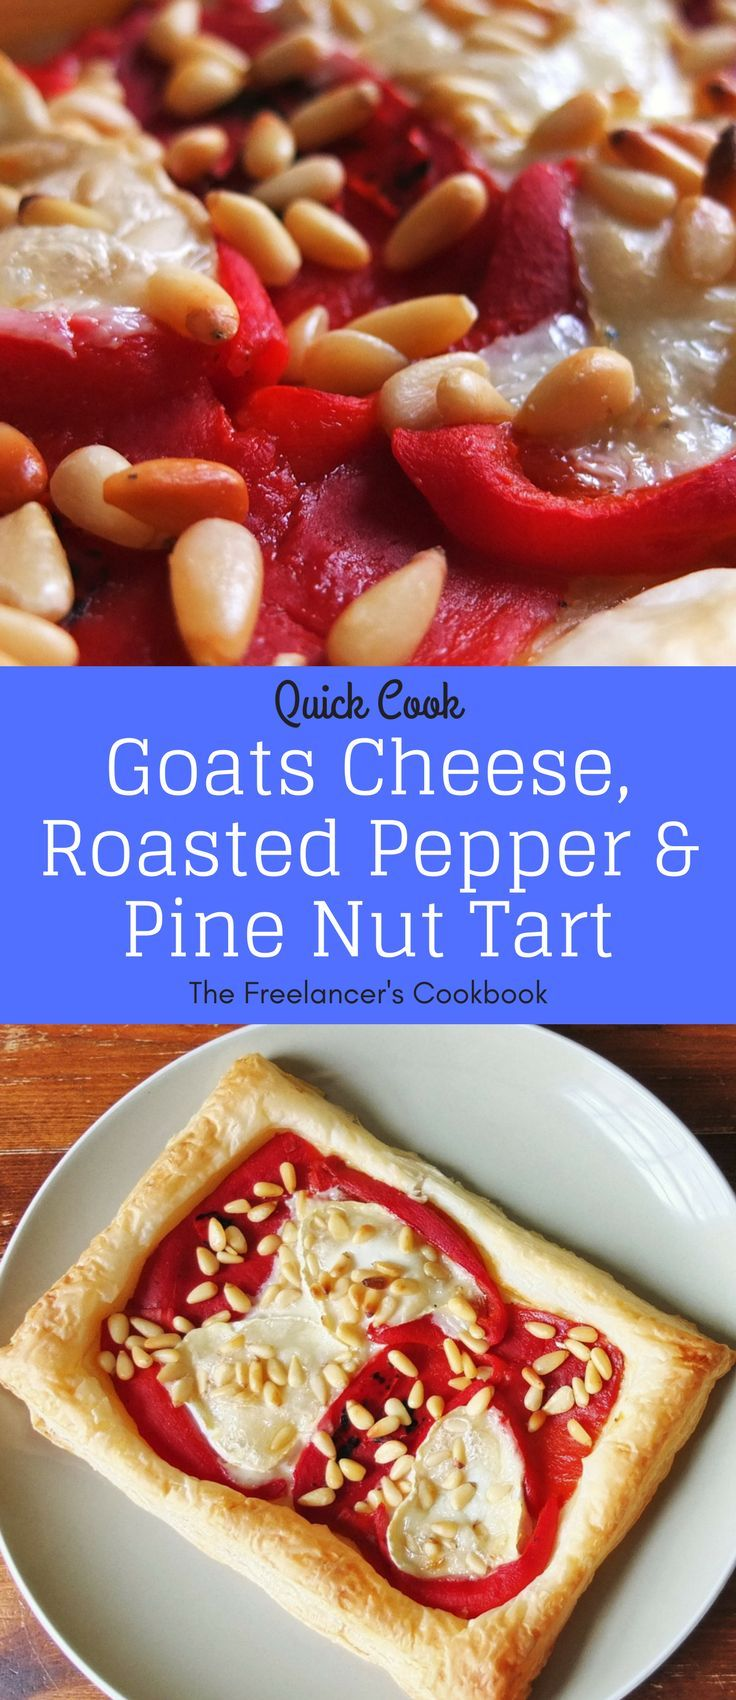 A super quick dinner or lunch - this goats cheese, red pepper and pine nut tart is an easily prepared healthy vegetarian meal using pre-made puff pastry.